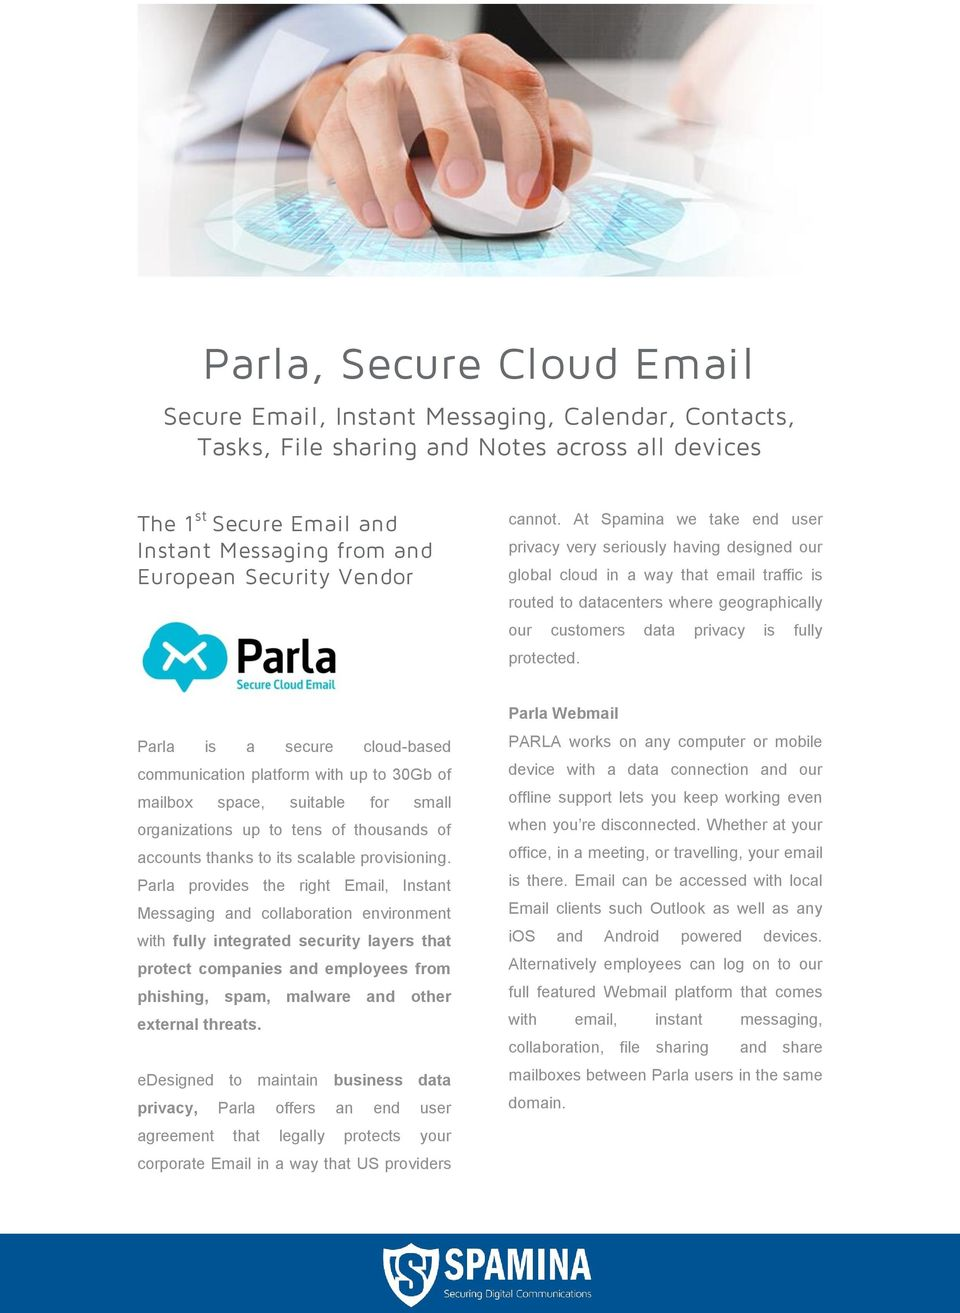 At Spamina we take end user privacy very seriously having designed our global cloud in a way that email traffic is routed to datacenters where geographically our customers data privacy is fully